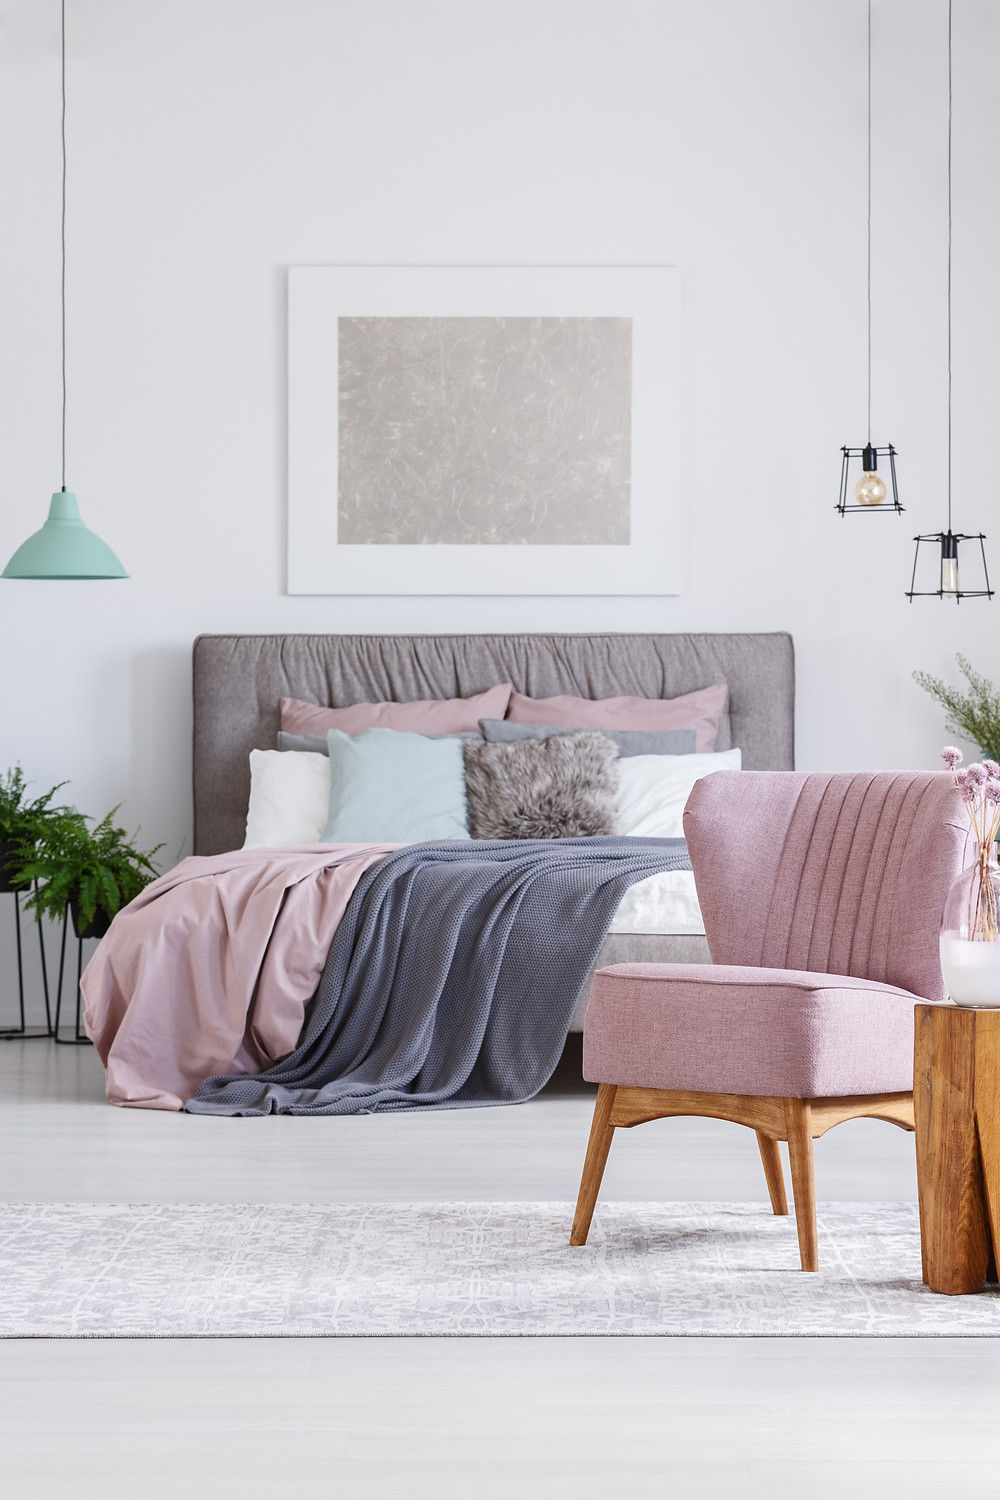 Blush pink interior design trends. Shades of pink. Pink and grey bedroom ideas. 2018 interior design trends. Pink wall combinations.